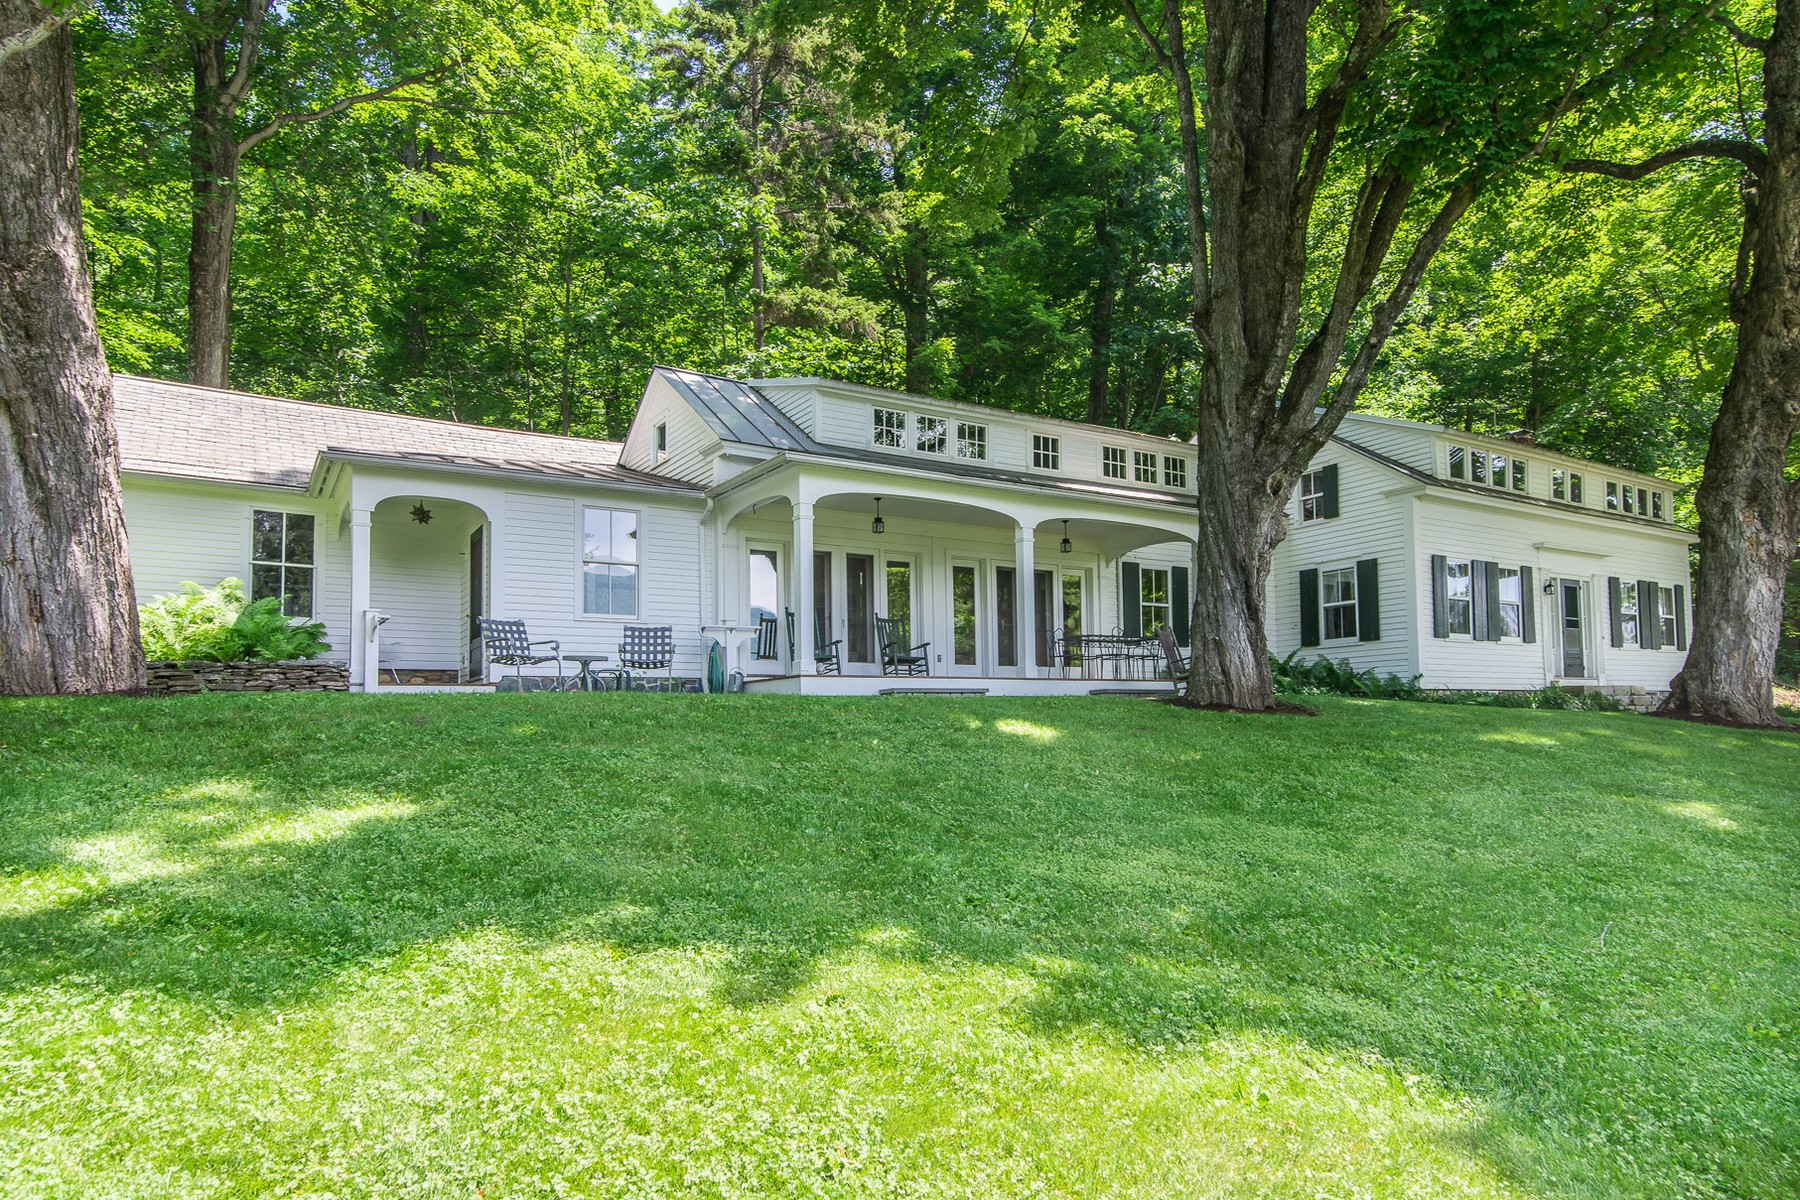 Single Family Home for Sale at 209 Maple Hill Lane, Dorset 209 Maple Hill Ln Dorset, Vermont 05251 United States